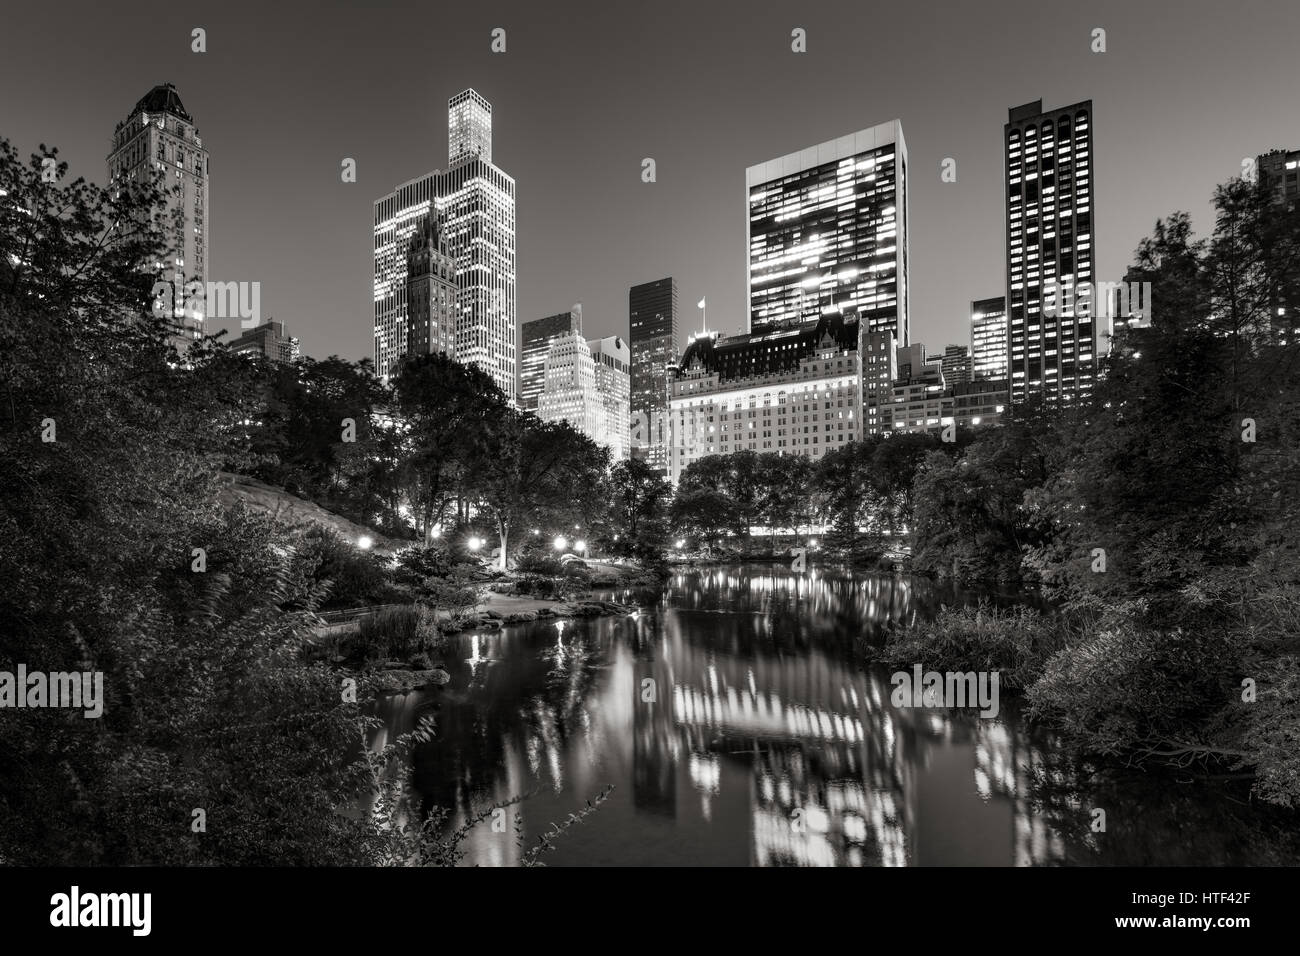 Midtown Manhattan skyscrapers illuminated in evening.The buildings of Central Park South are reflected in the Pond. - Stock Image